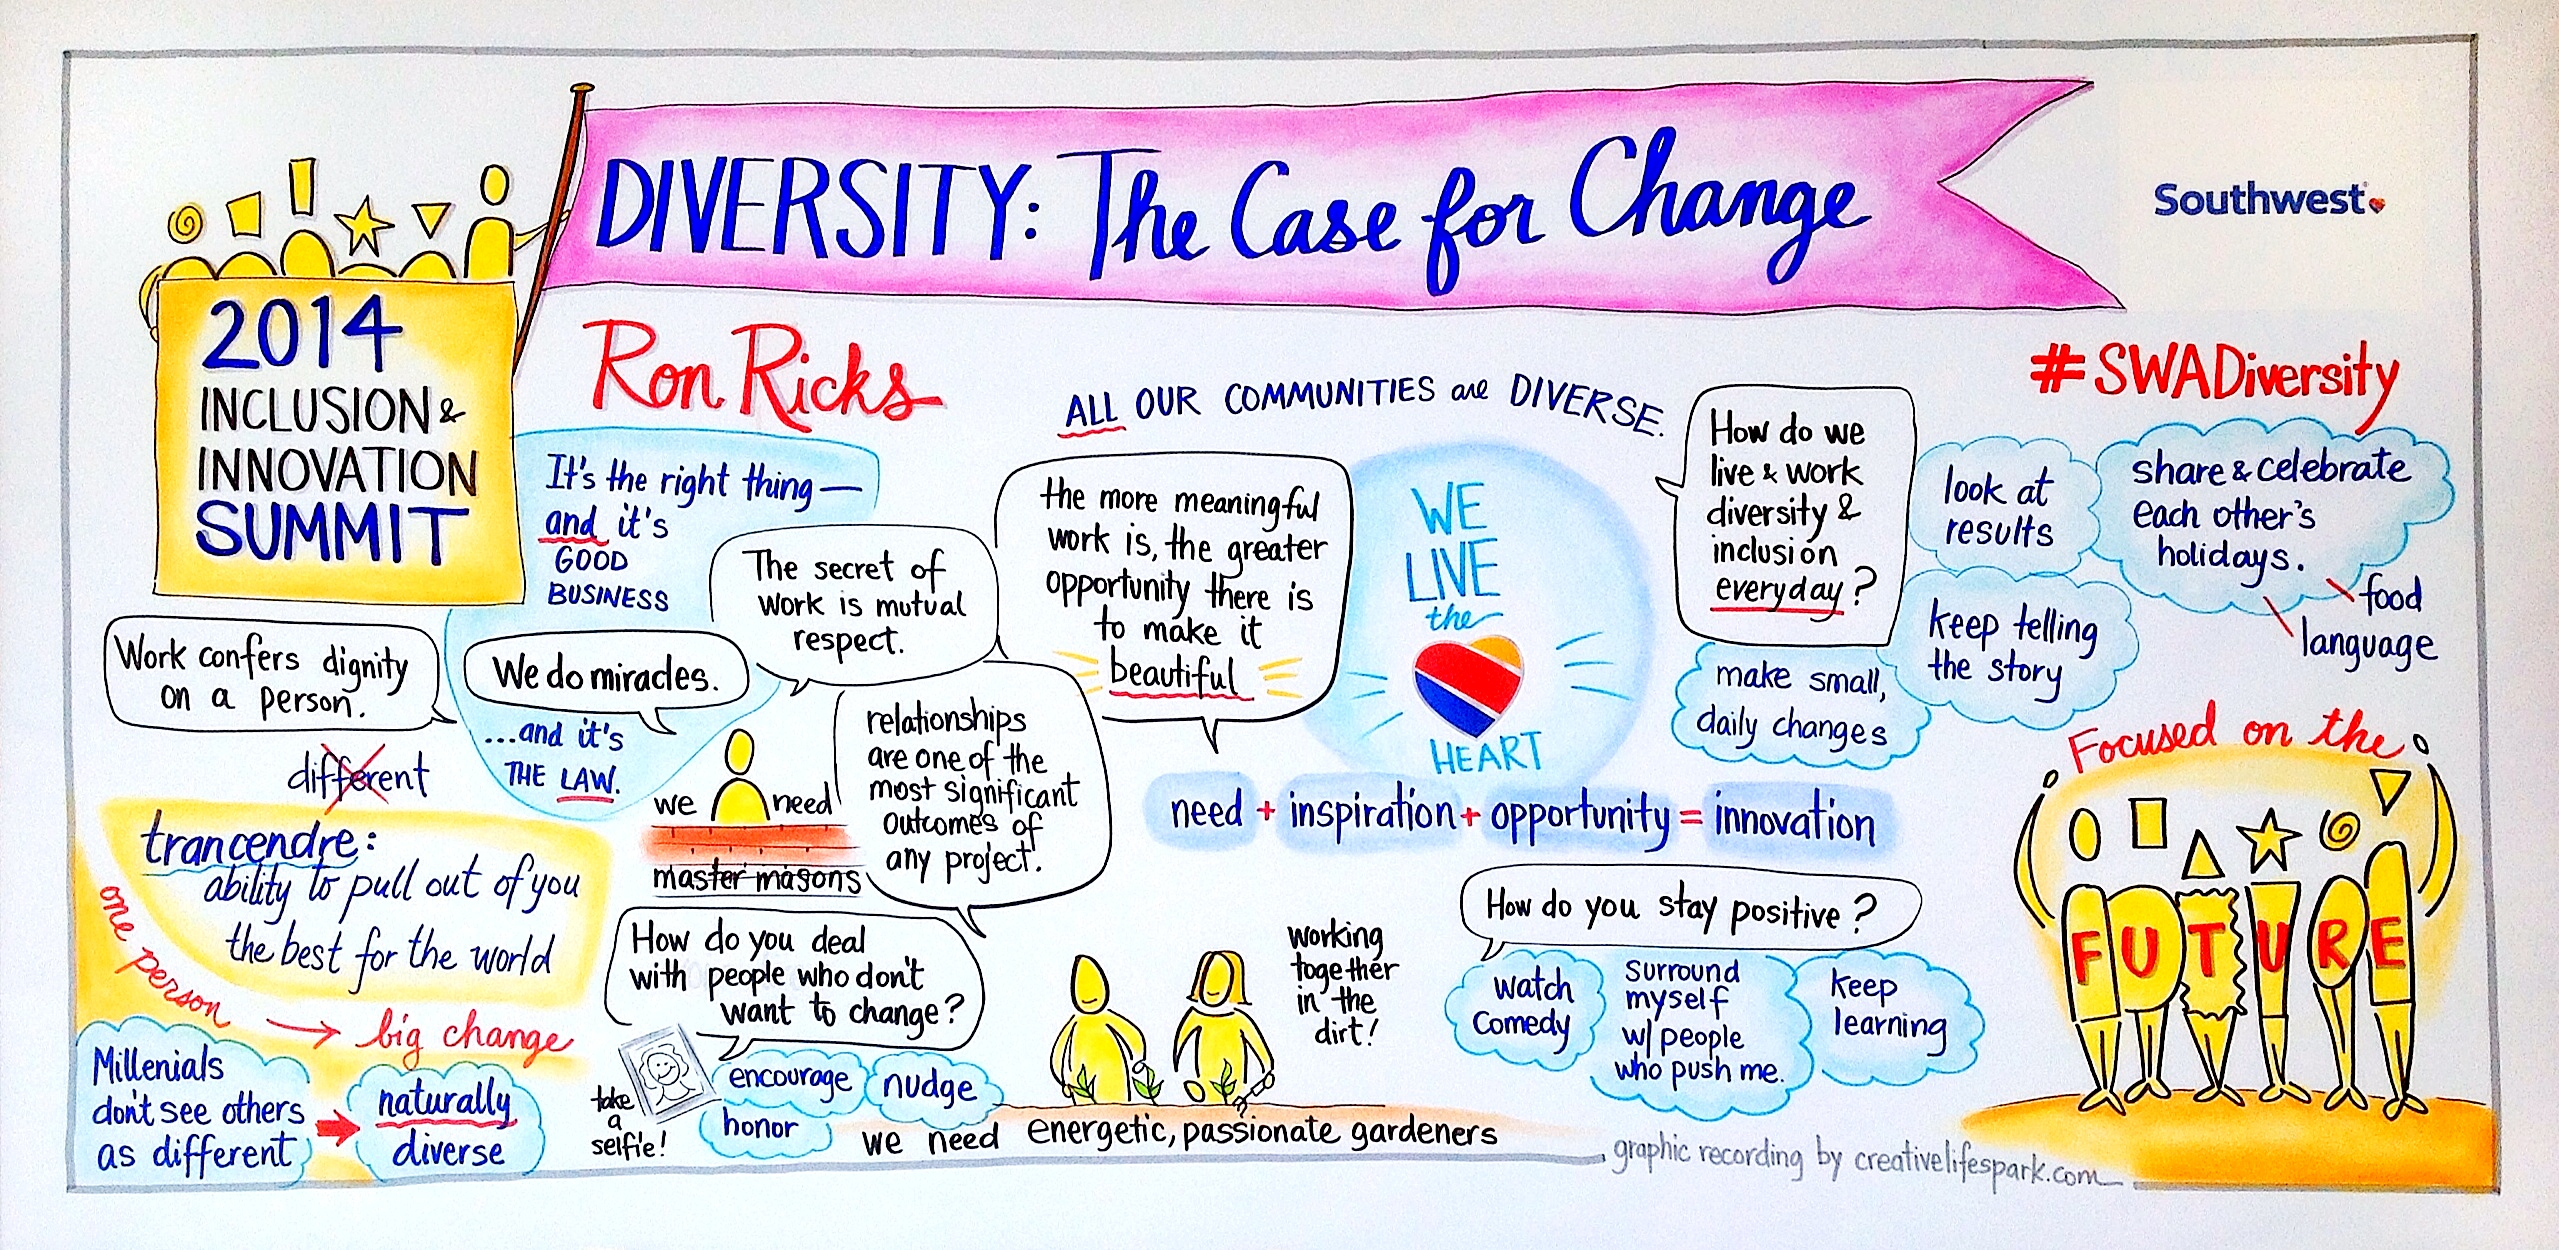 SWA Diversity The Case for Change